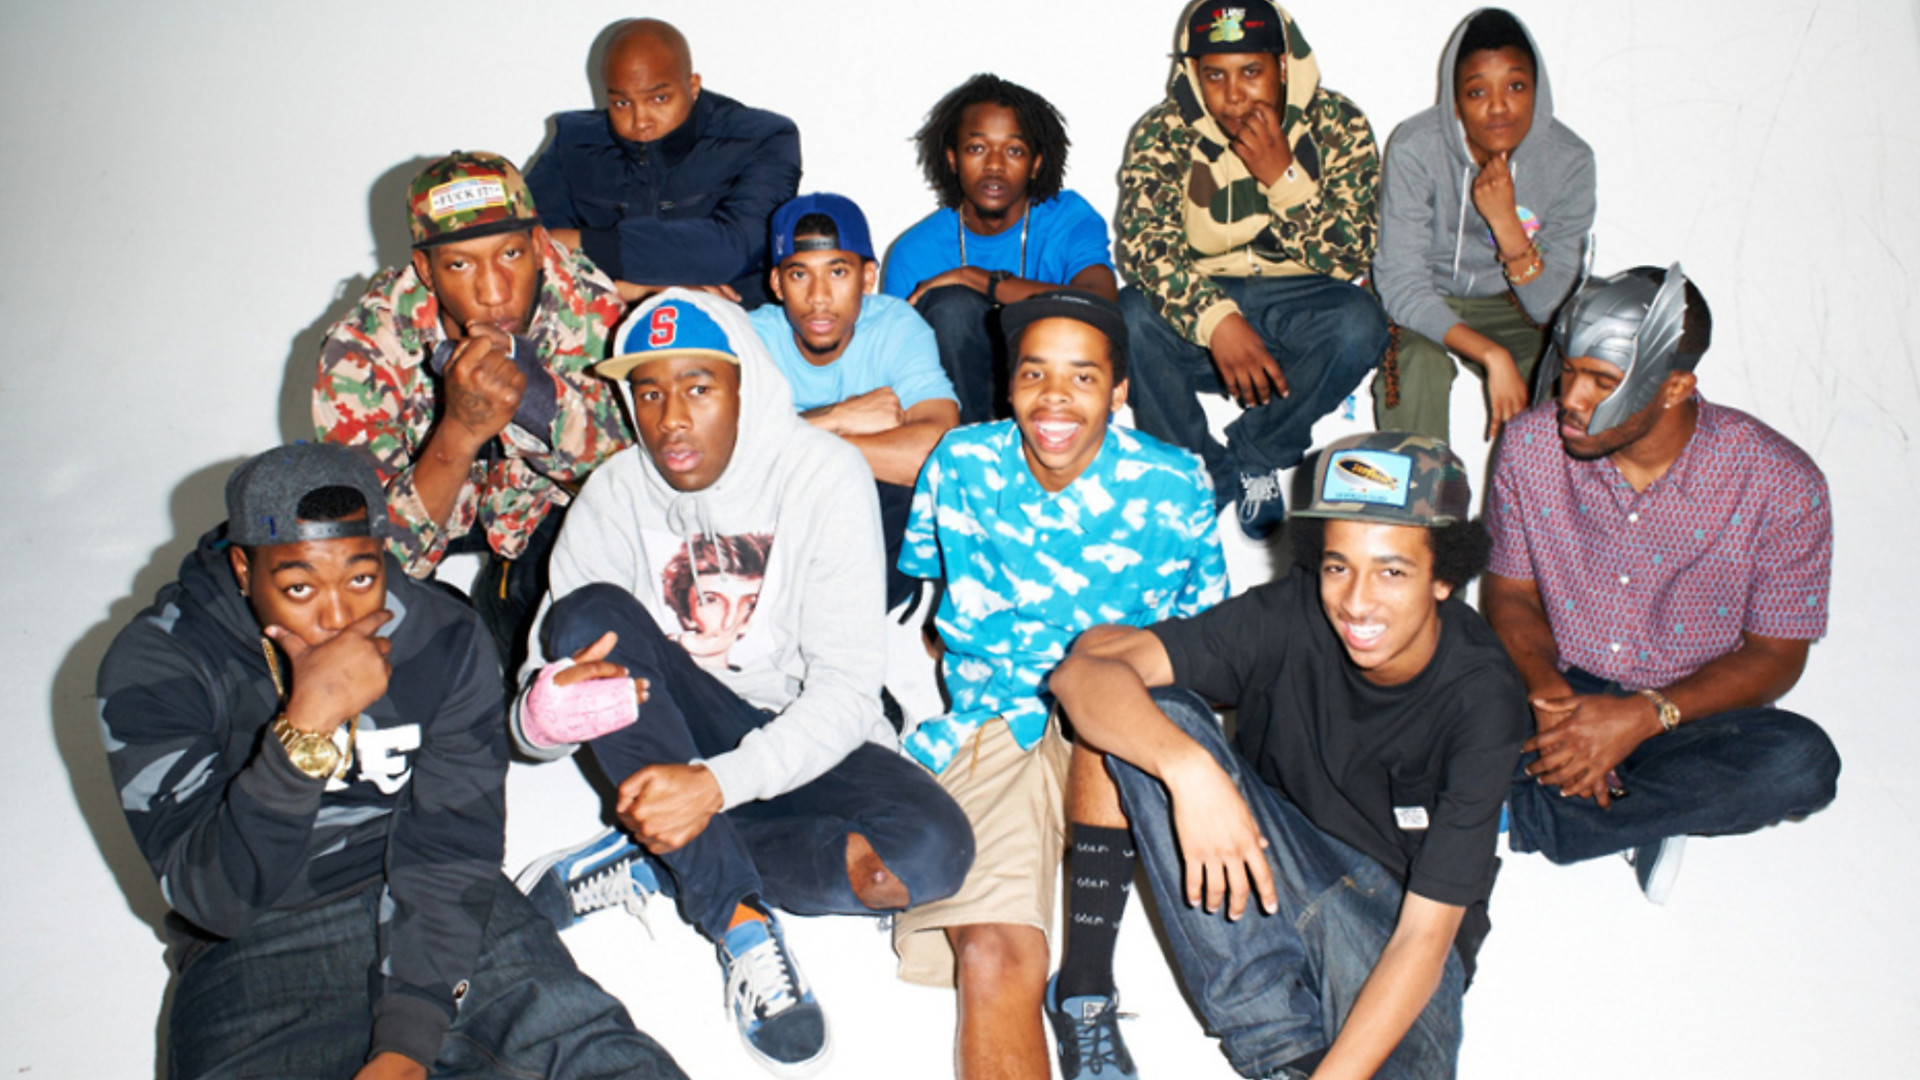 After Odd Future | Arena Music